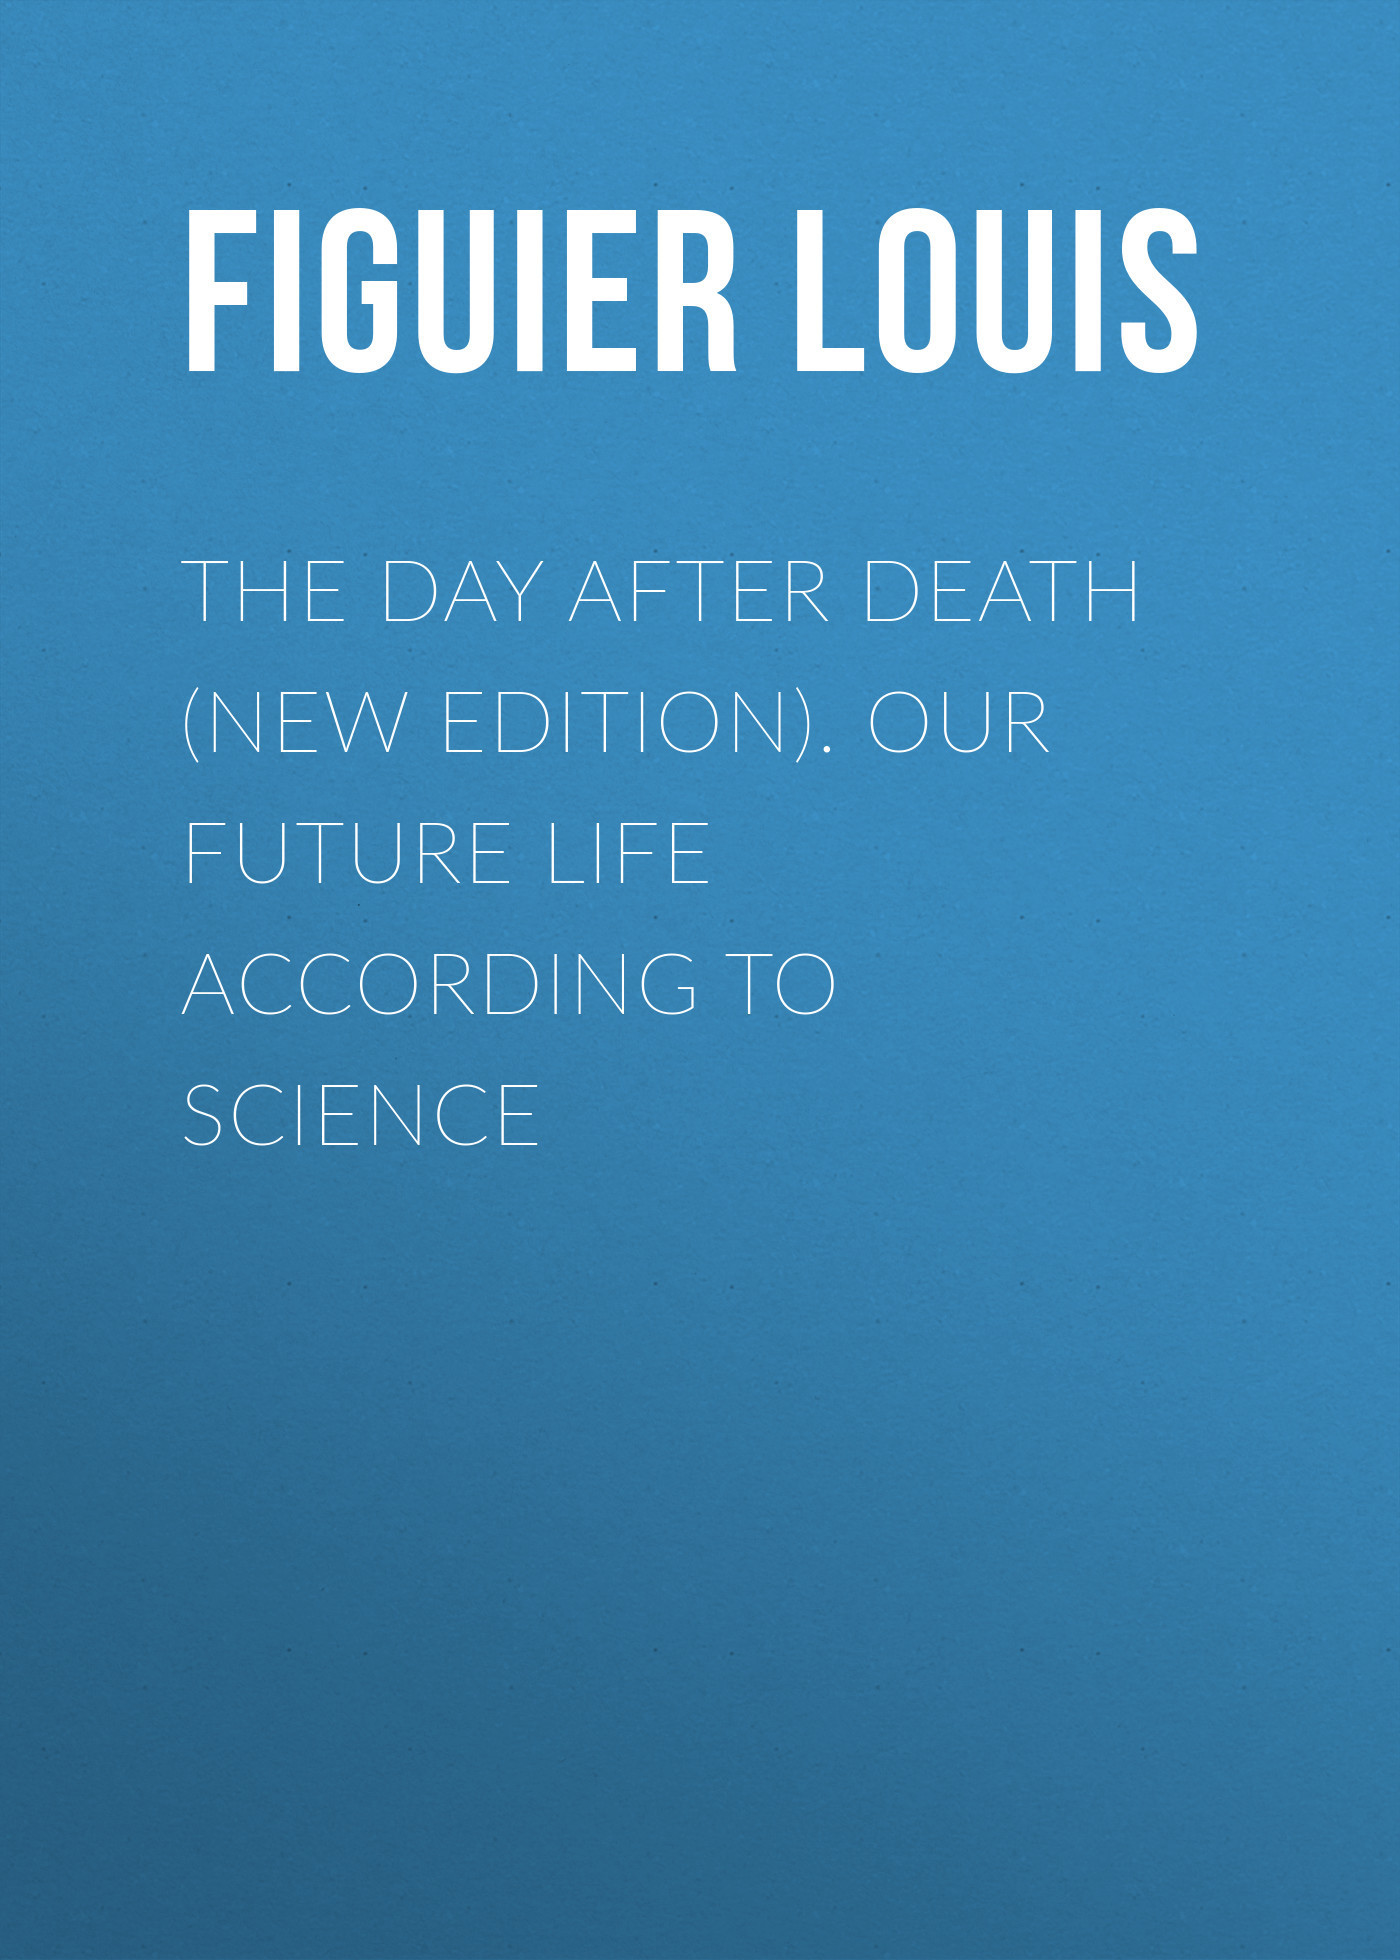 Figuier Louis The Day After Death (New Edition). Our Future Life According to Science 1pc sfu2010 ballscrew length 500mm with ballnut according to bk15 bf15 end machined nut housing bk15 bf15 support